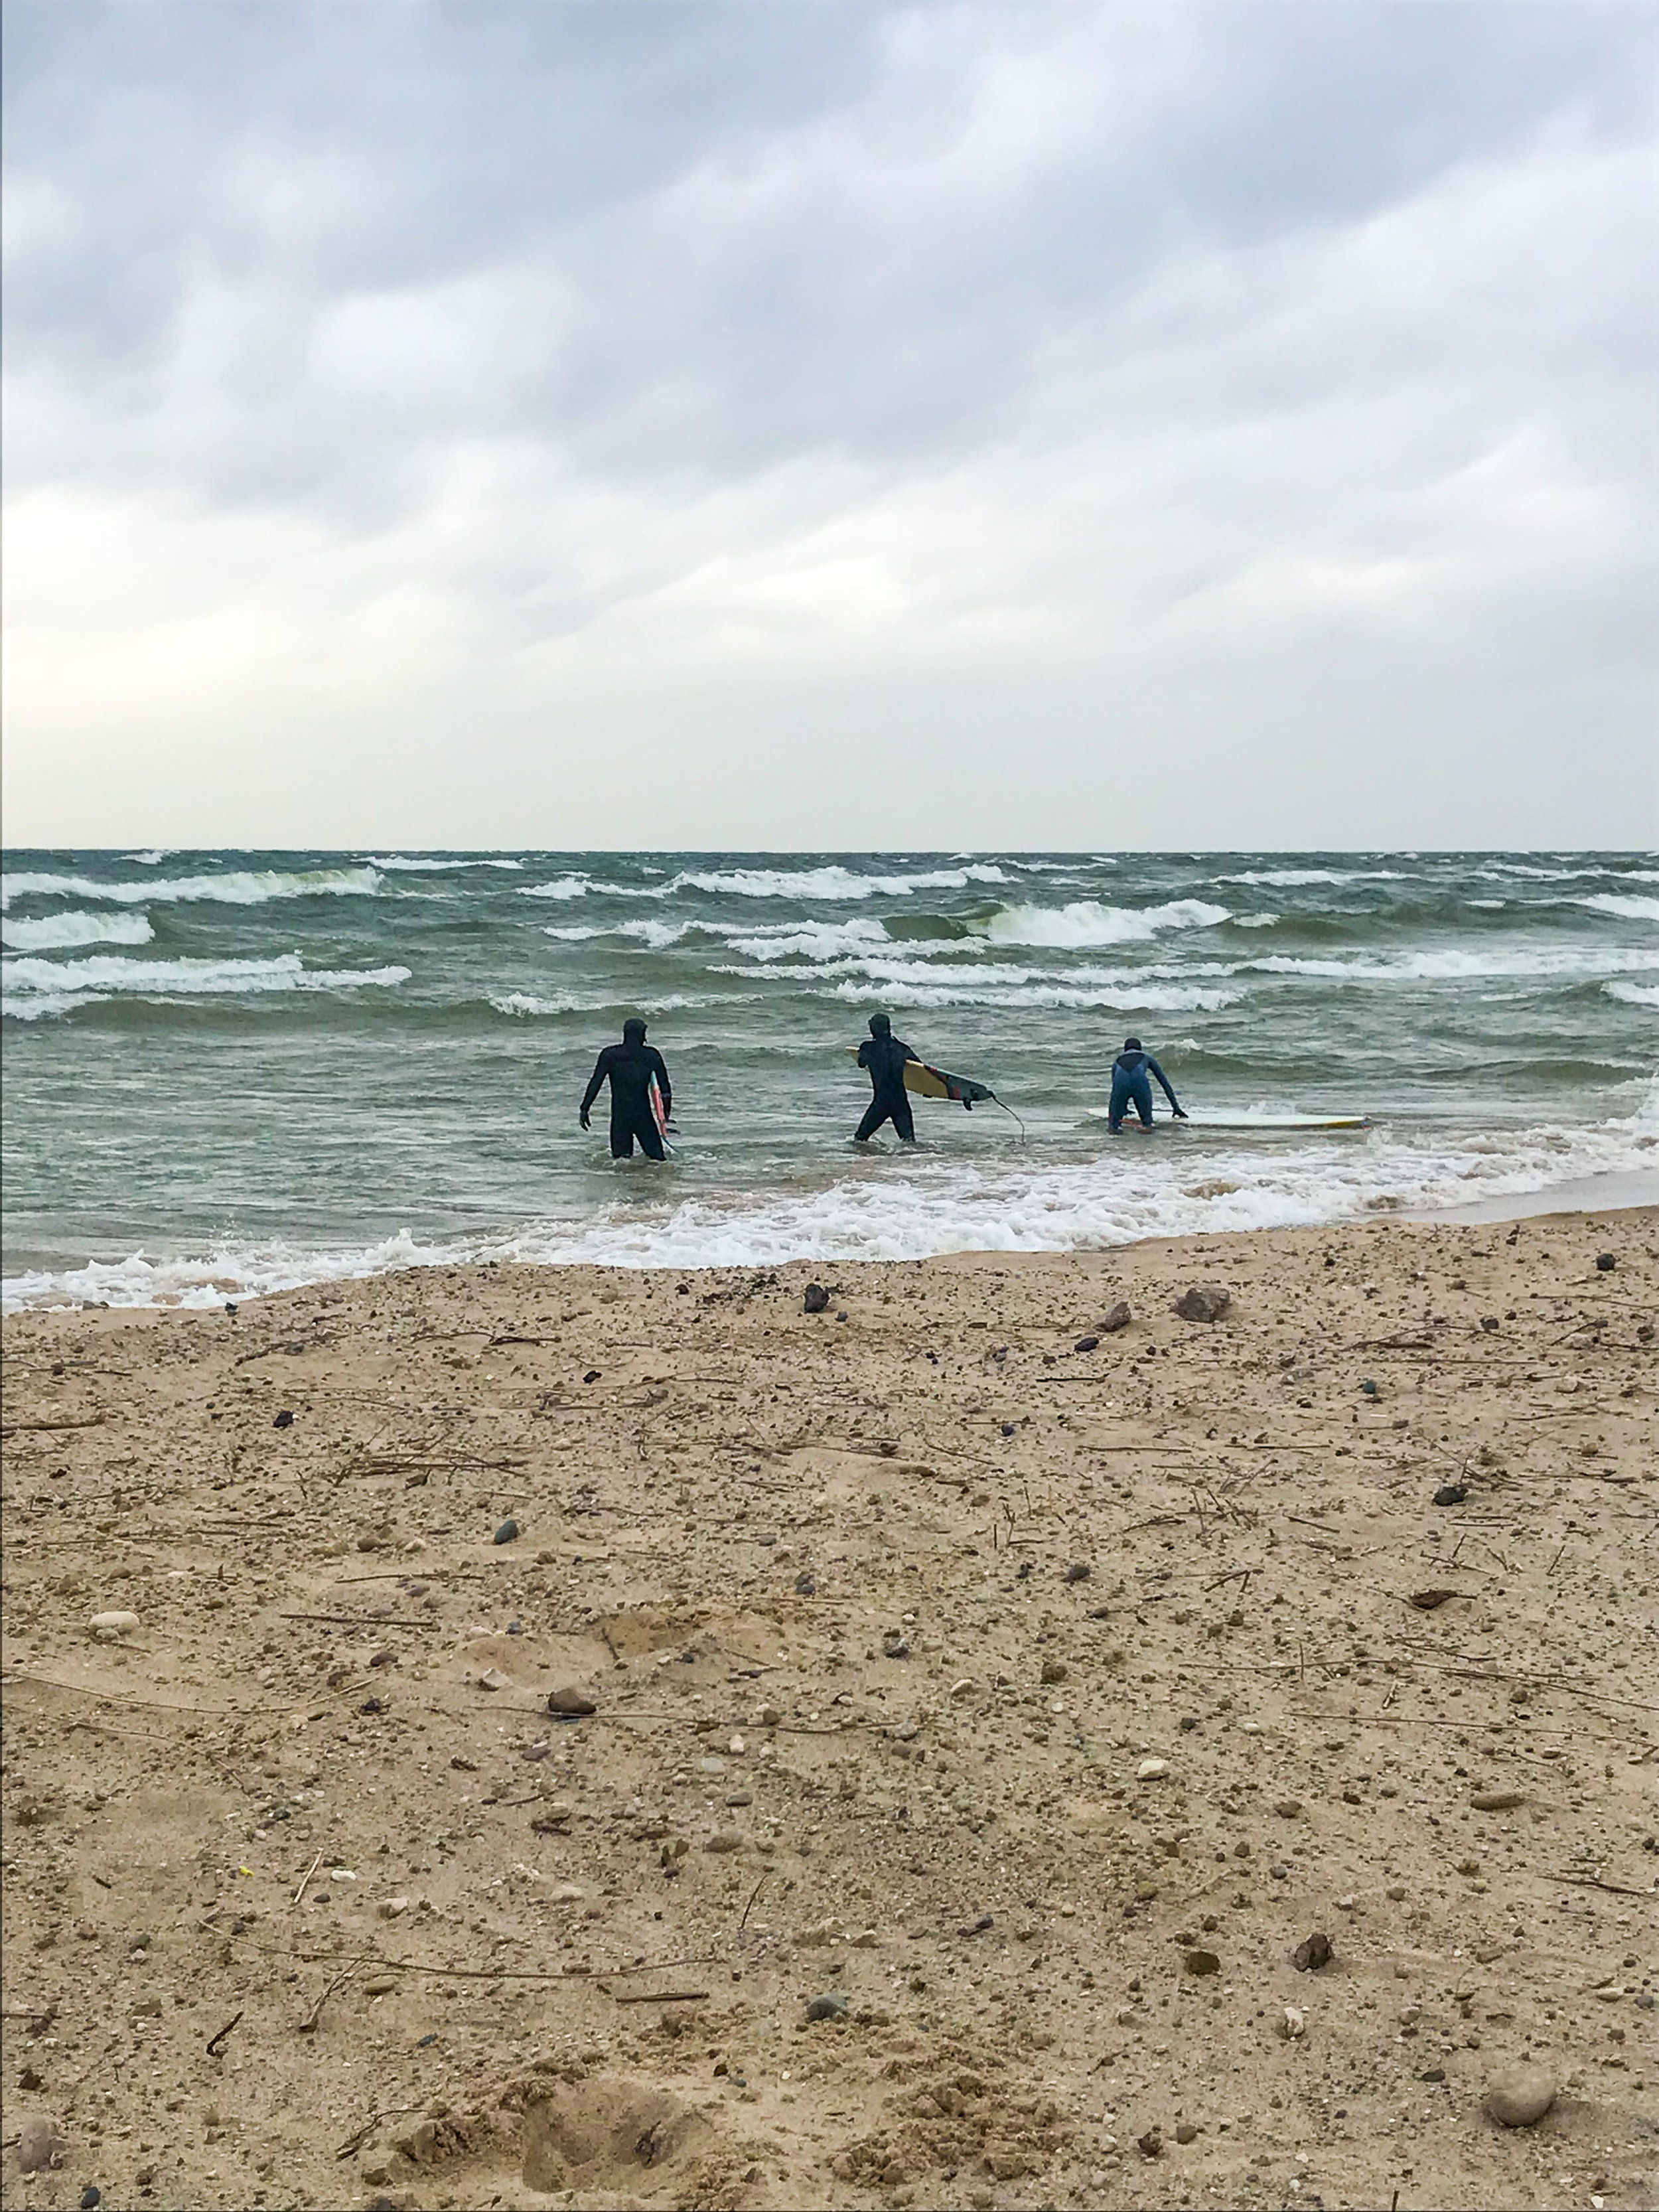 We attempted to surf in the insane wind… attempted